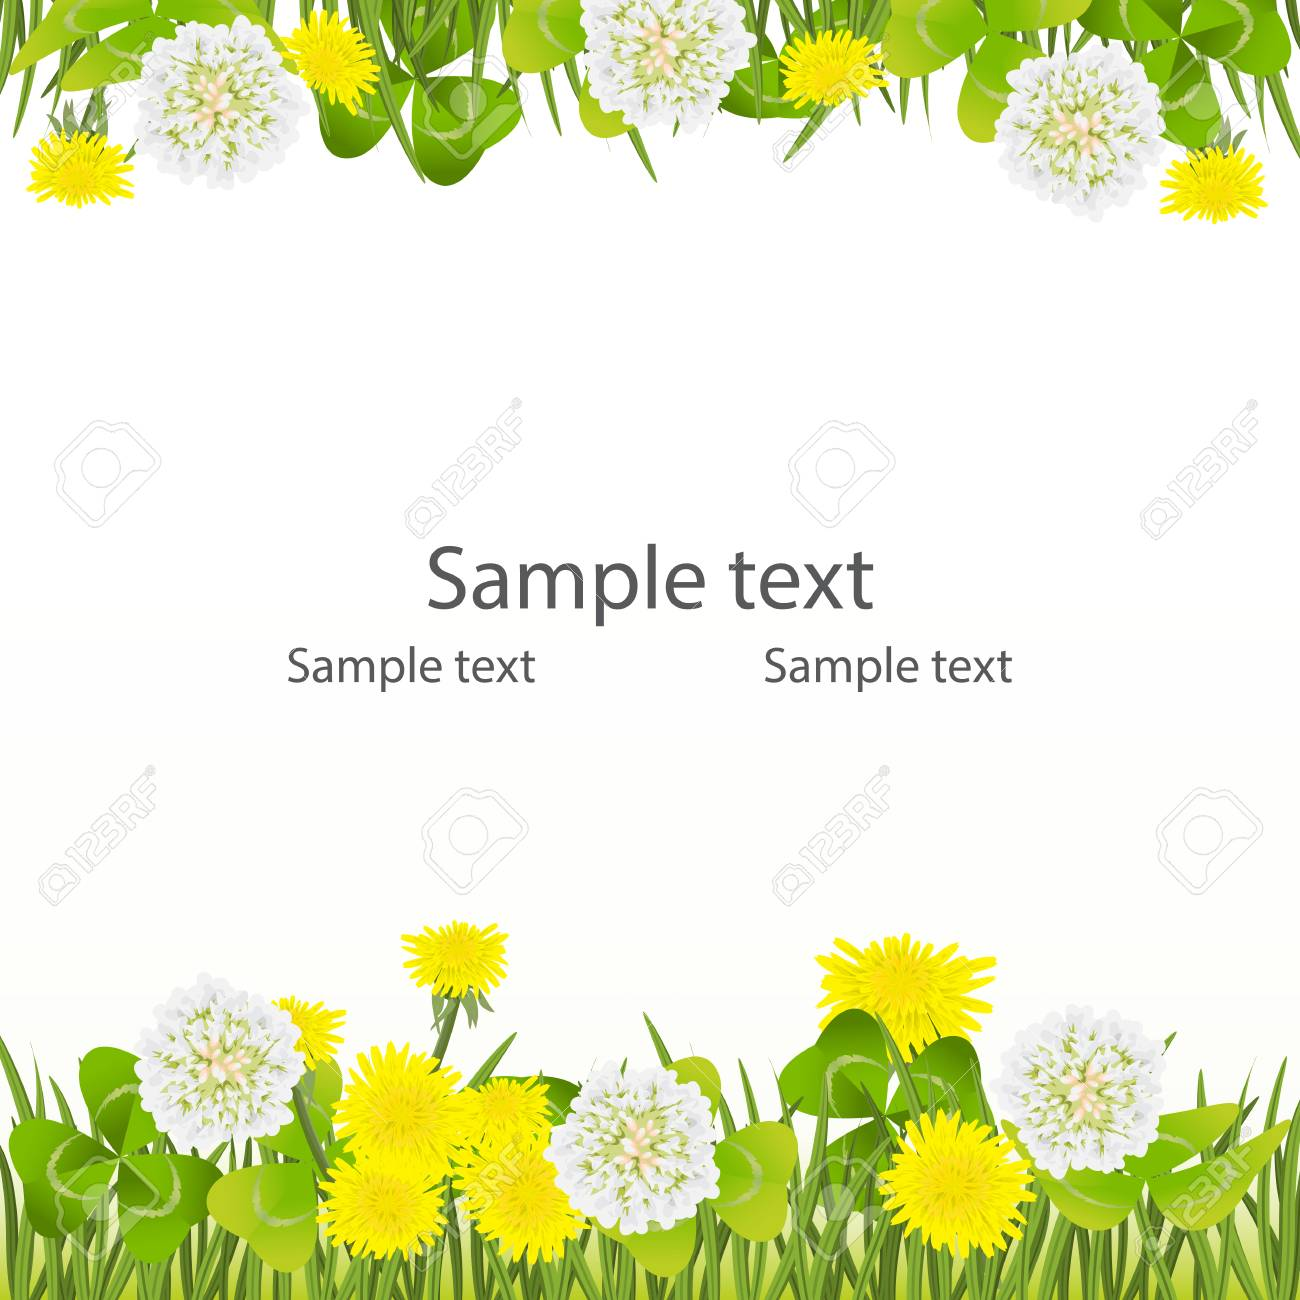 Spring background, Easter, Mother's day birthday, wedding frame